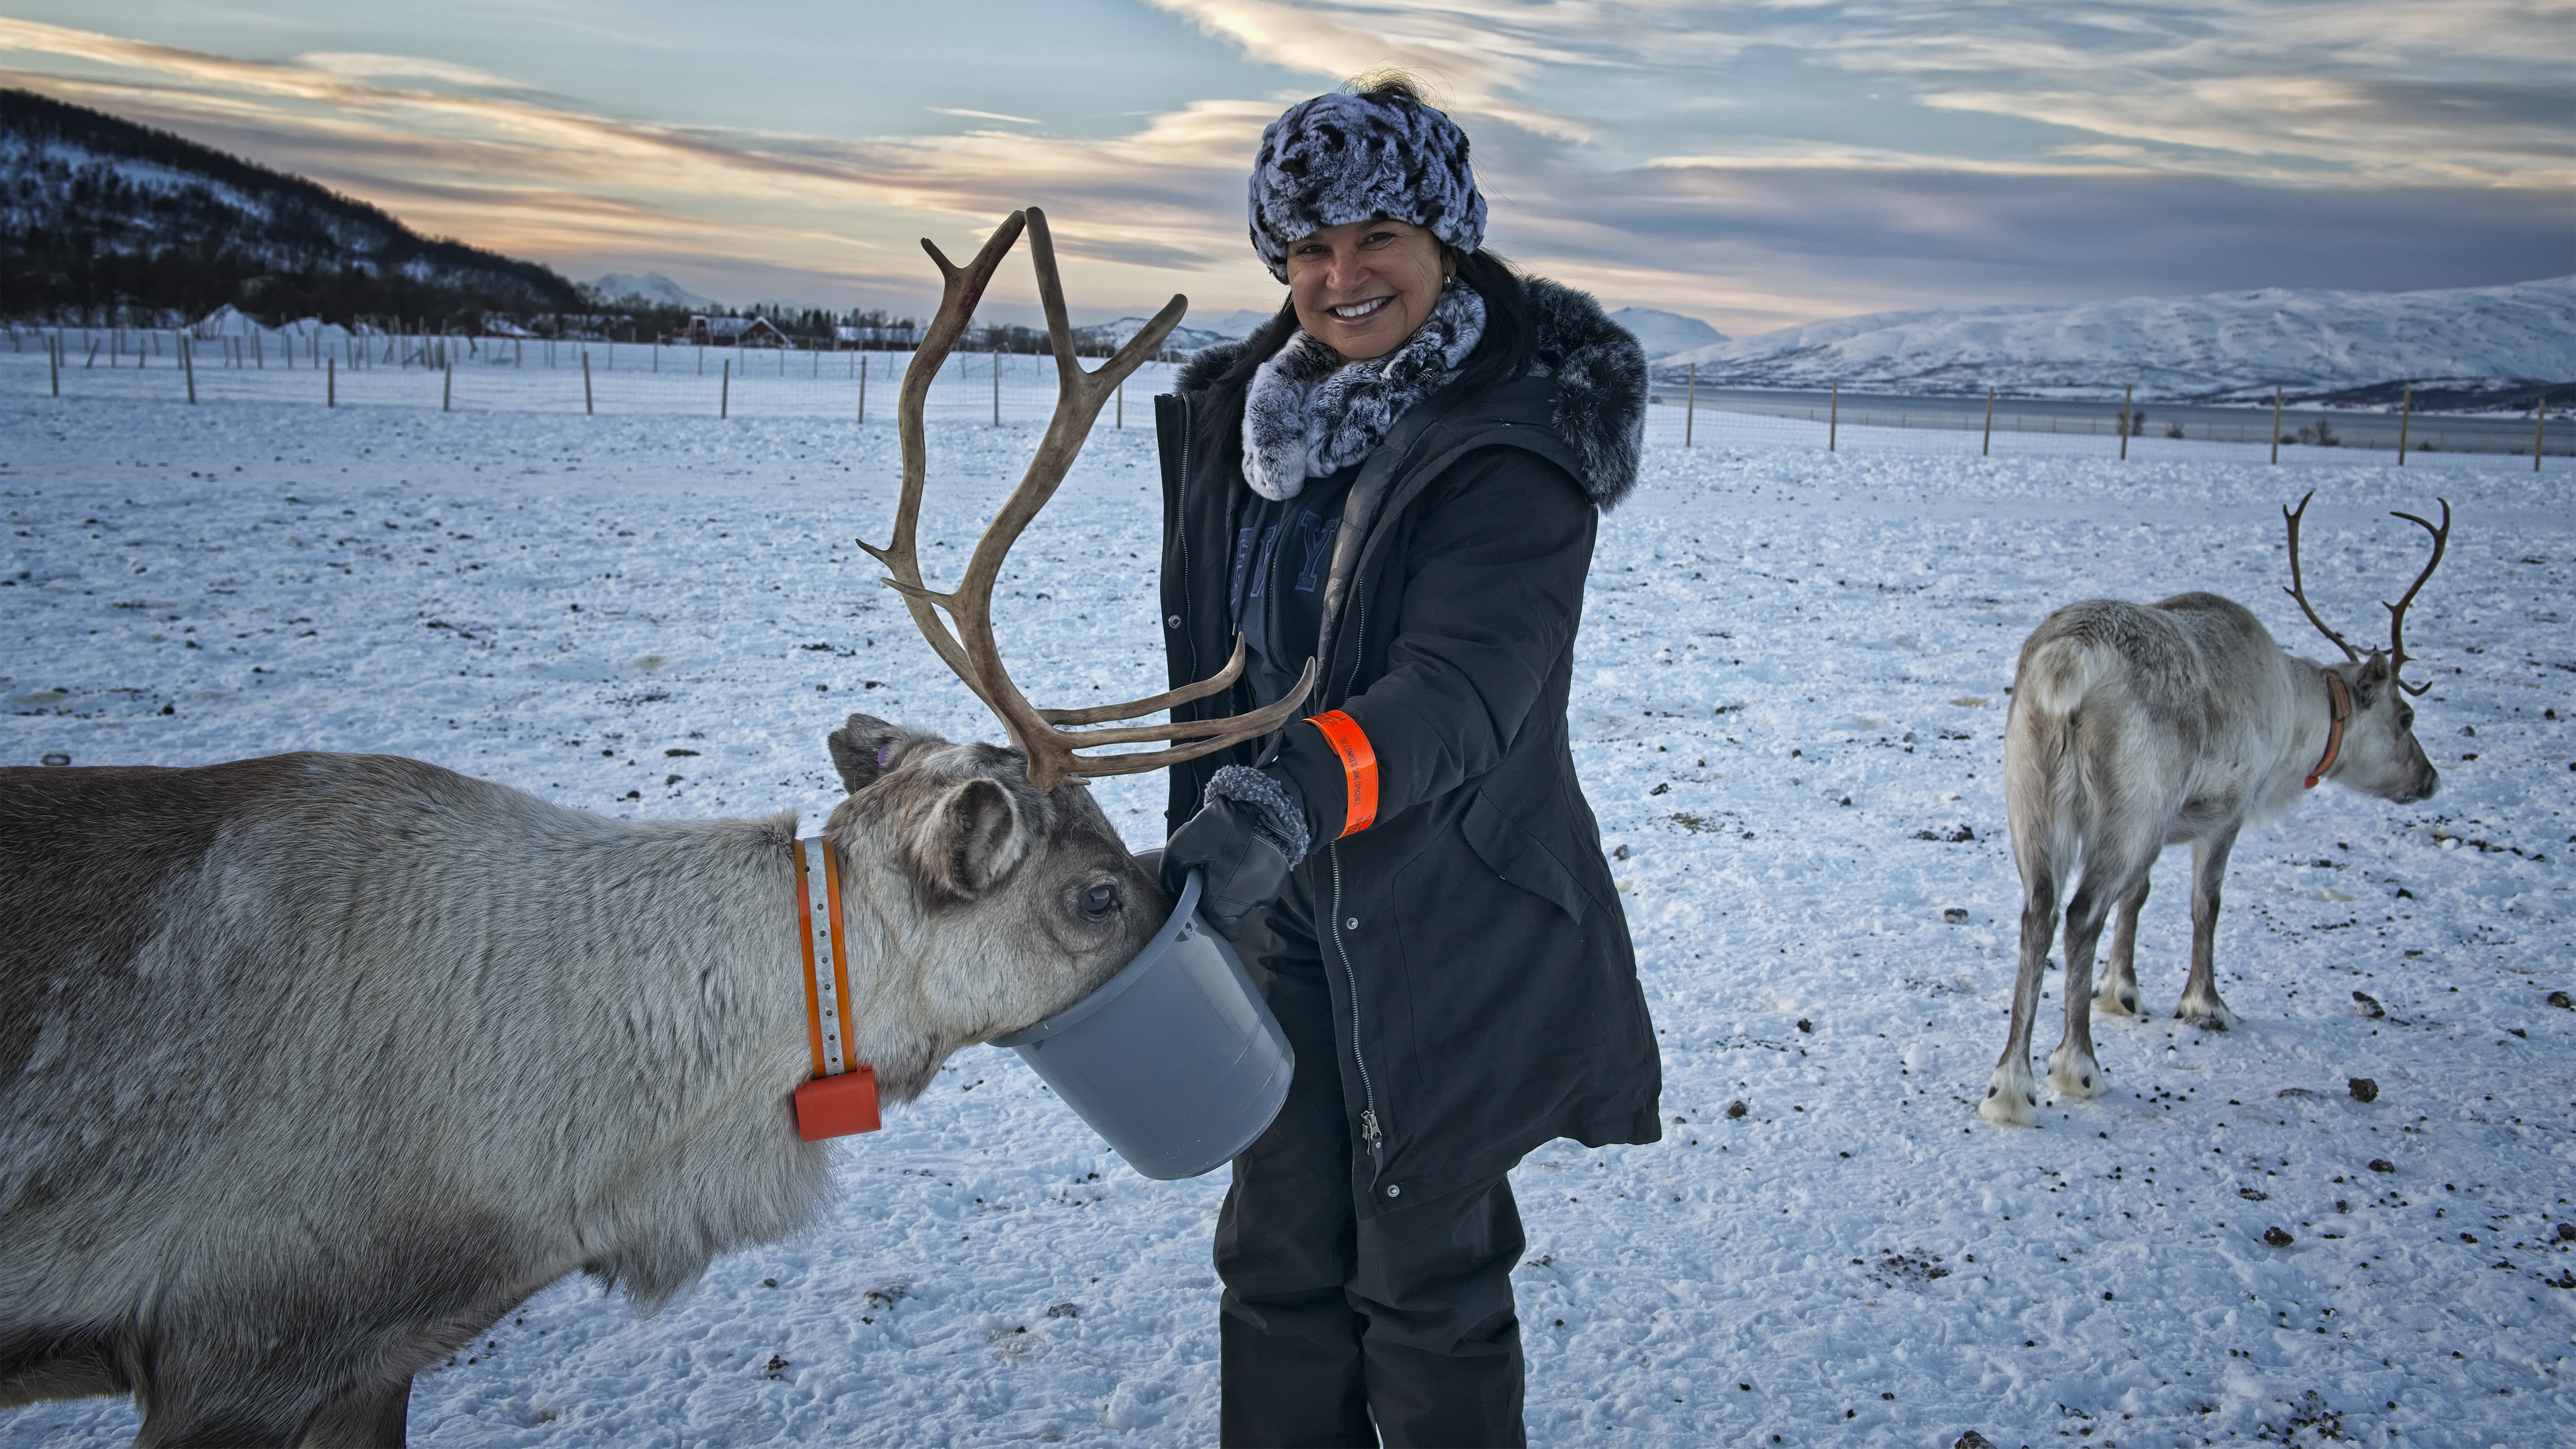 Giving Treats to the Reindeer